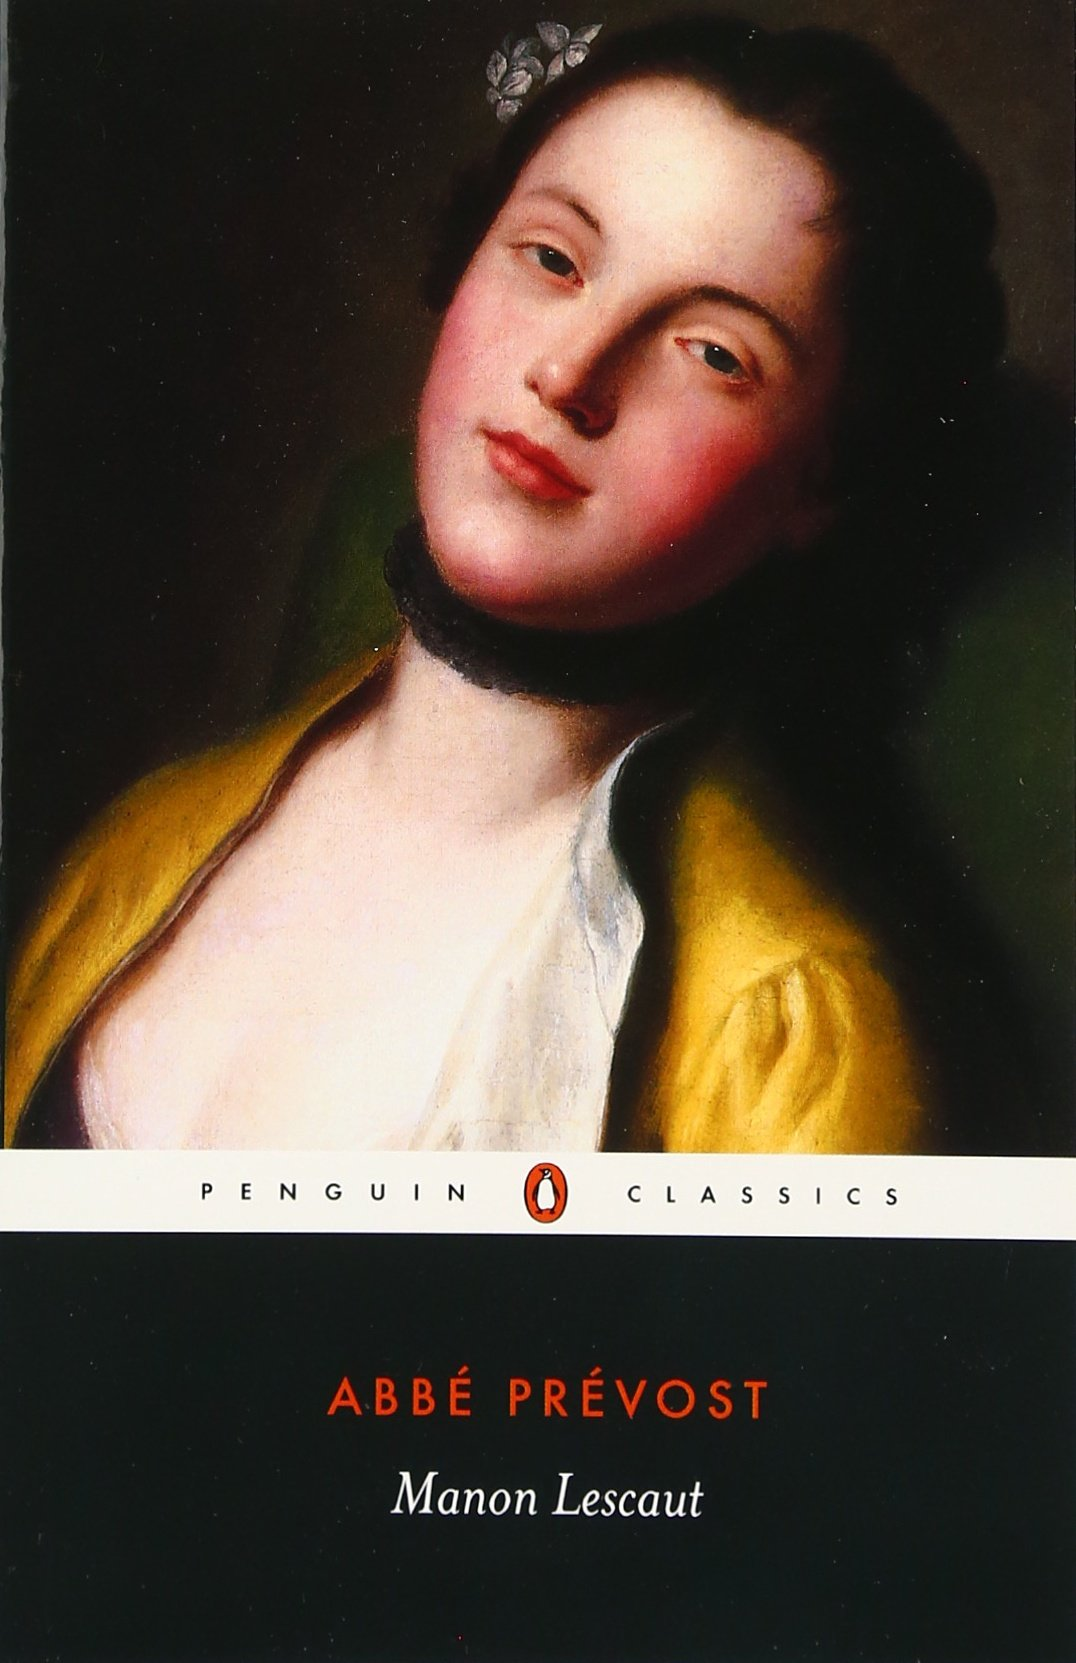 Download image 1700s woman portrait pc android iphone and ipad - Manon Lescaut Classics S Abbe Prevost Leonard Tancock Jean Sgard 9780140445596 Amazon Com Books